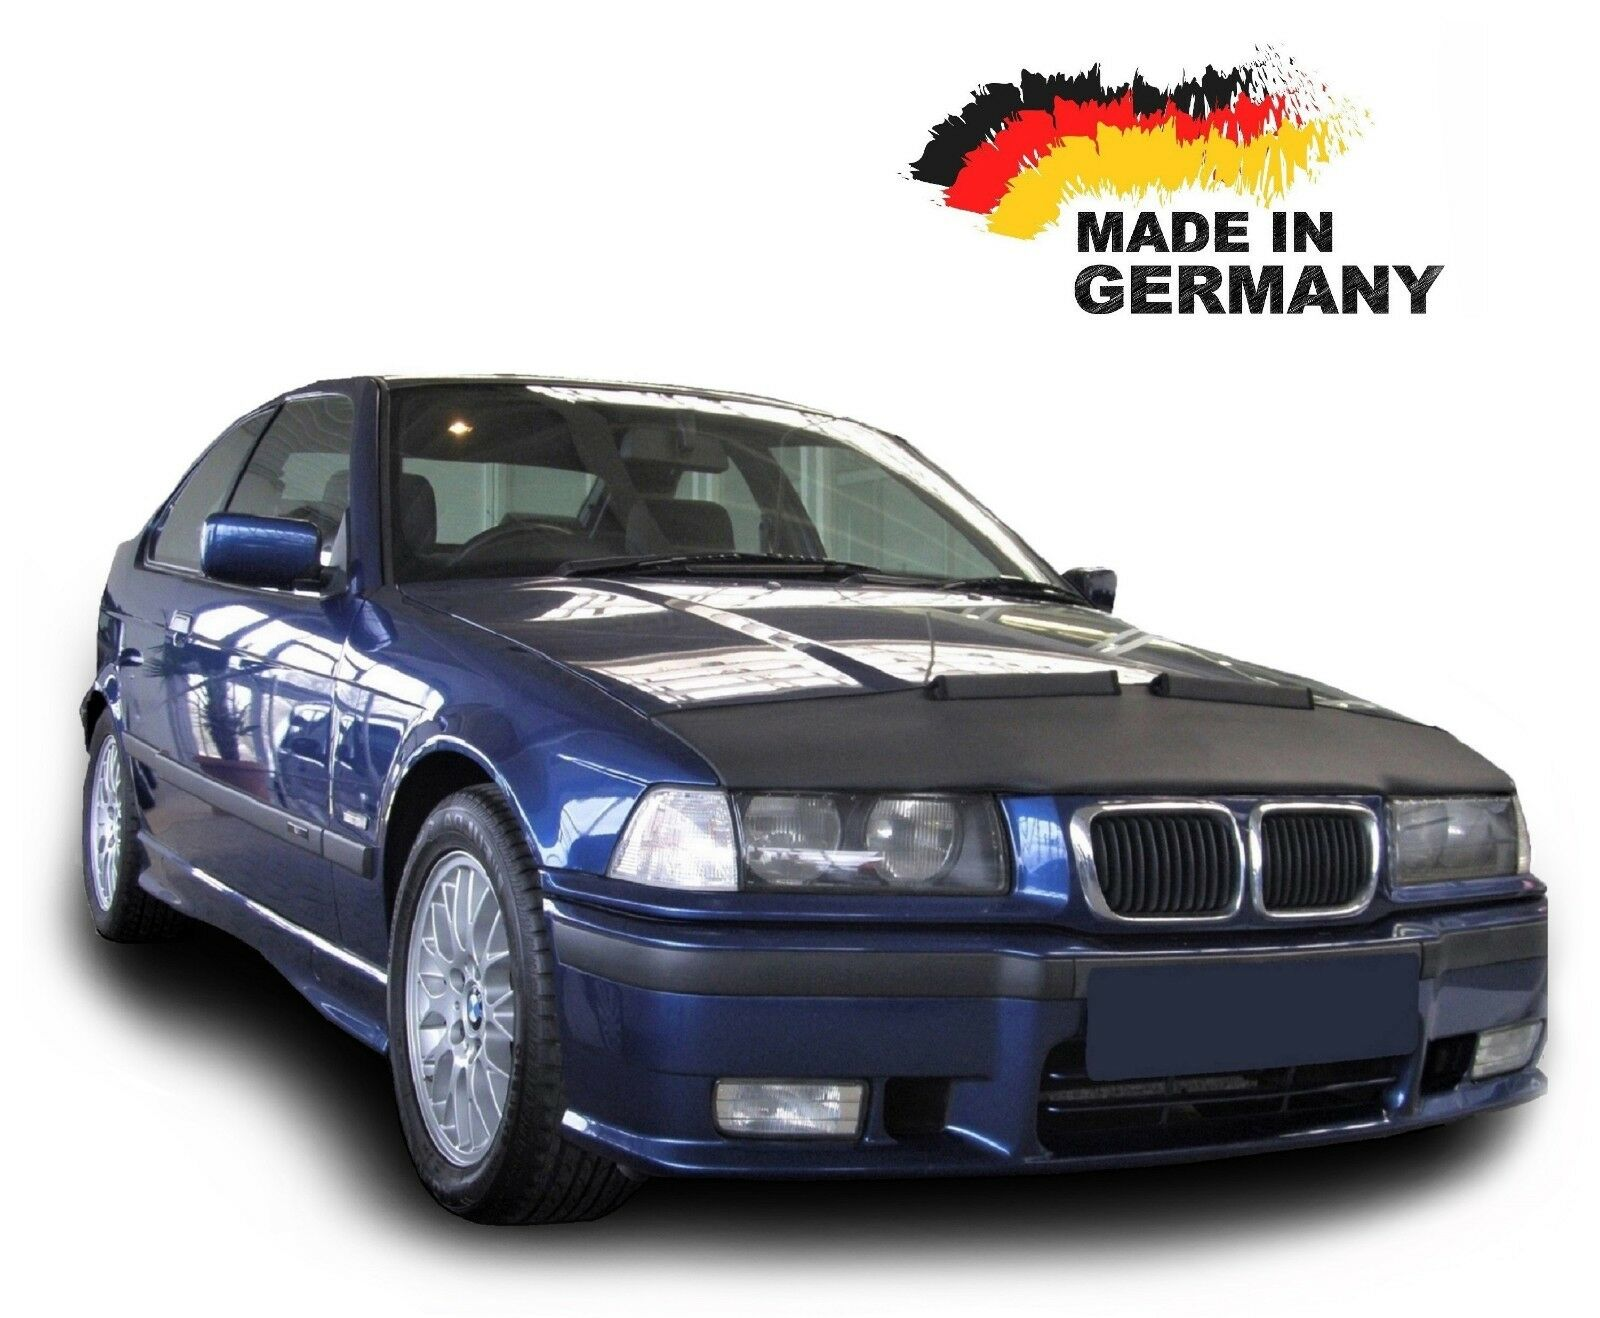 HOOD BRA Front End Nose Mask for BMW 1 F20 since 2011 Bonnet Bra STONEGUARD PROTECTOR TUNING